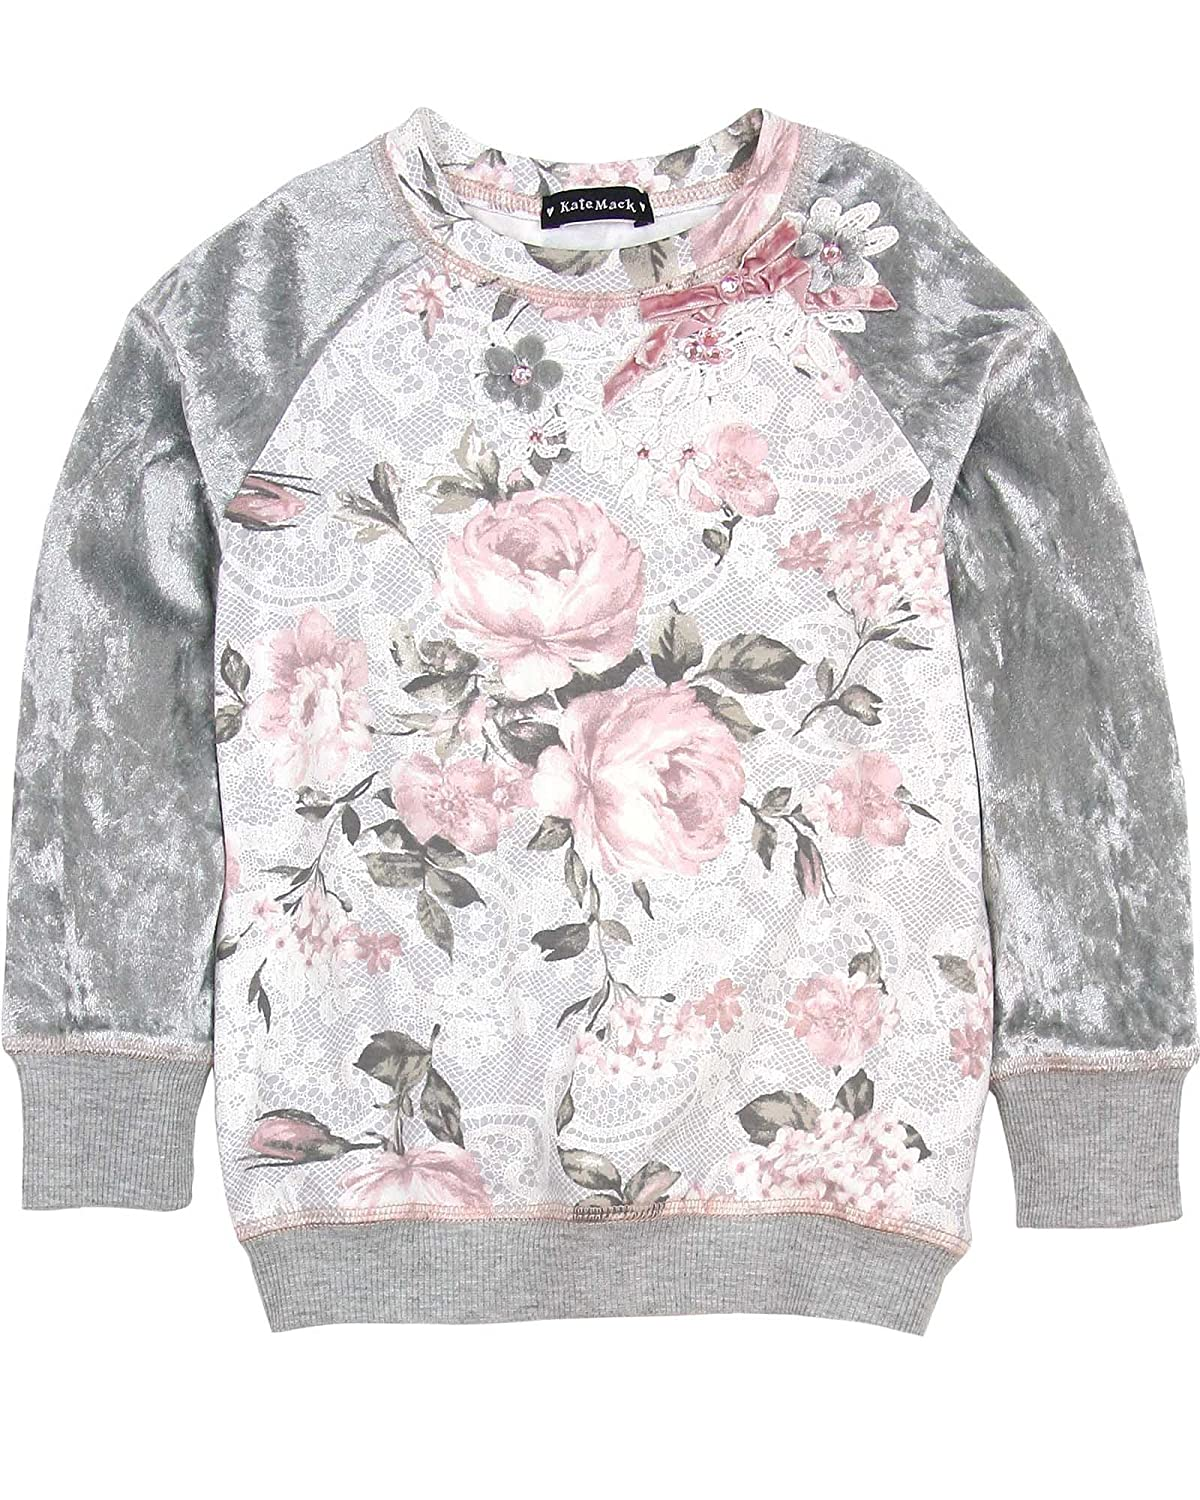 Kate Mack Girls' Rose Sweatshirt, Sizes 4-16 Sizes 4-16 - 5